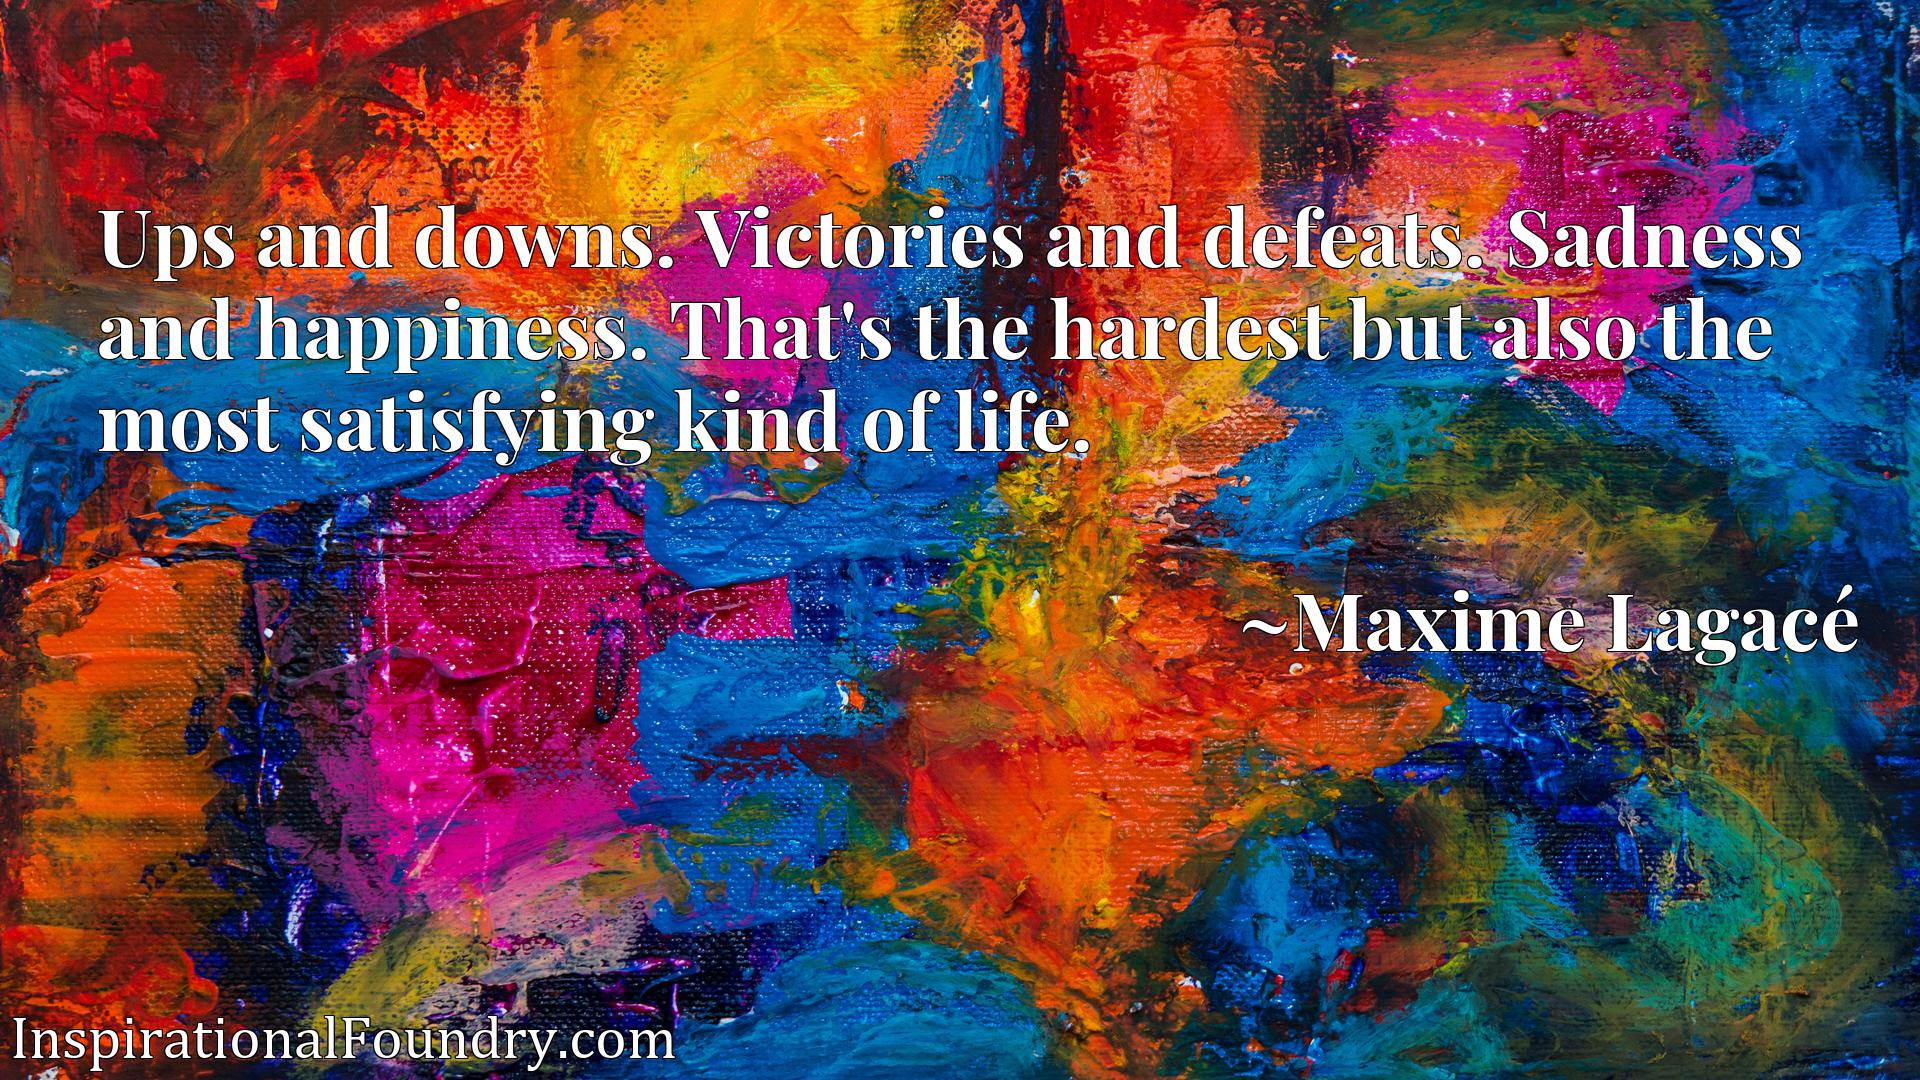 Ups and downs. Victories and defeats. Sadness and happiness. That's the hardest but also the most satisfying kind of life.